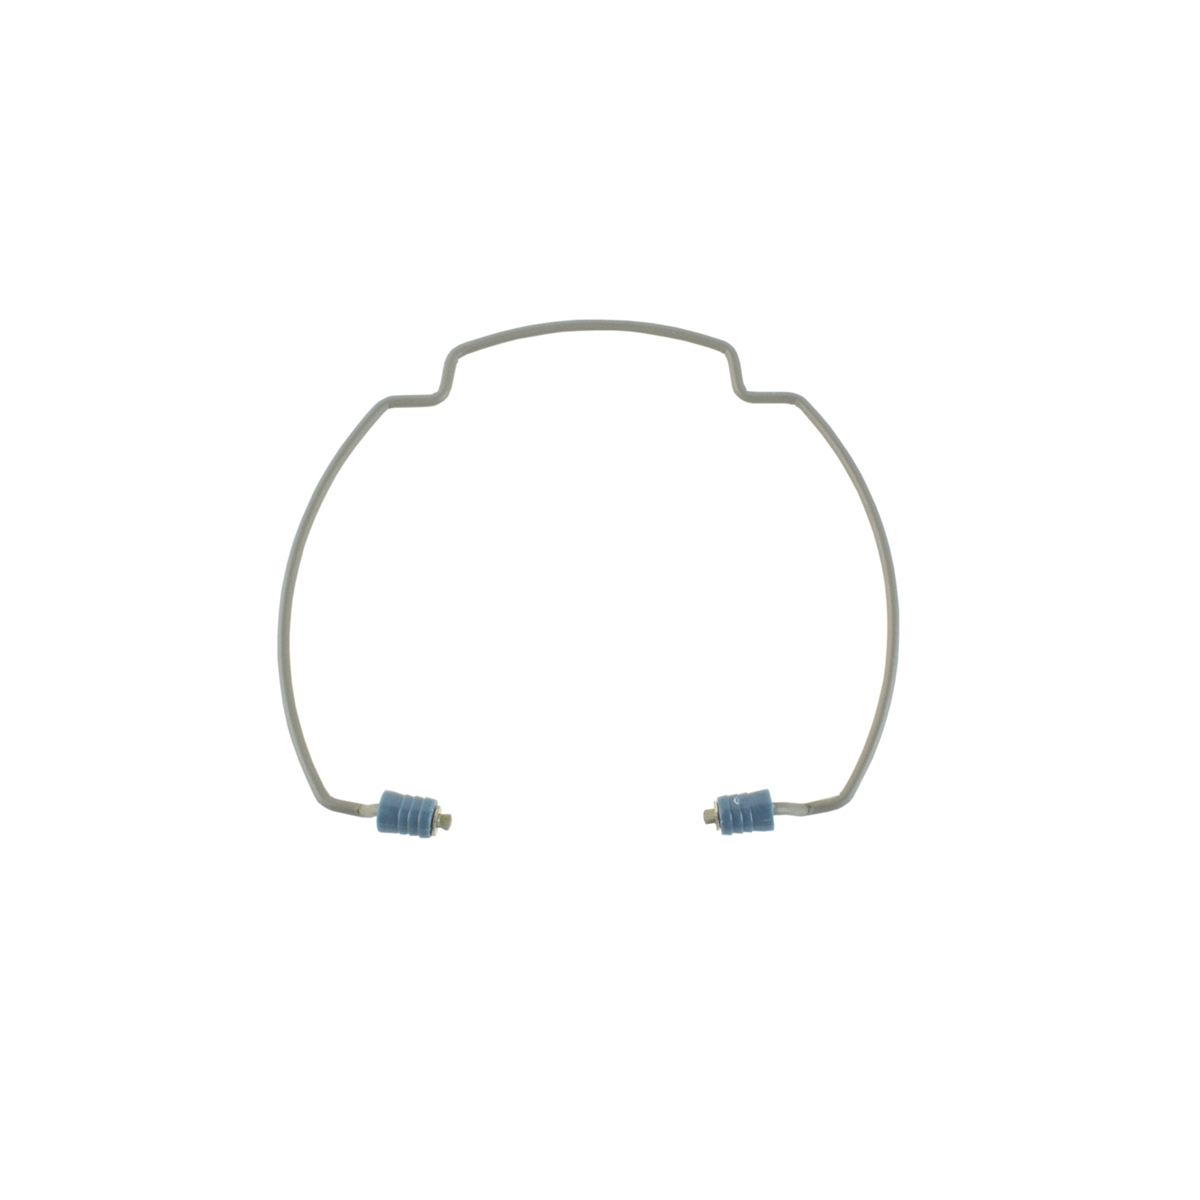 Philips M1355A TOCO M1356A US Transducer Retainer Wire